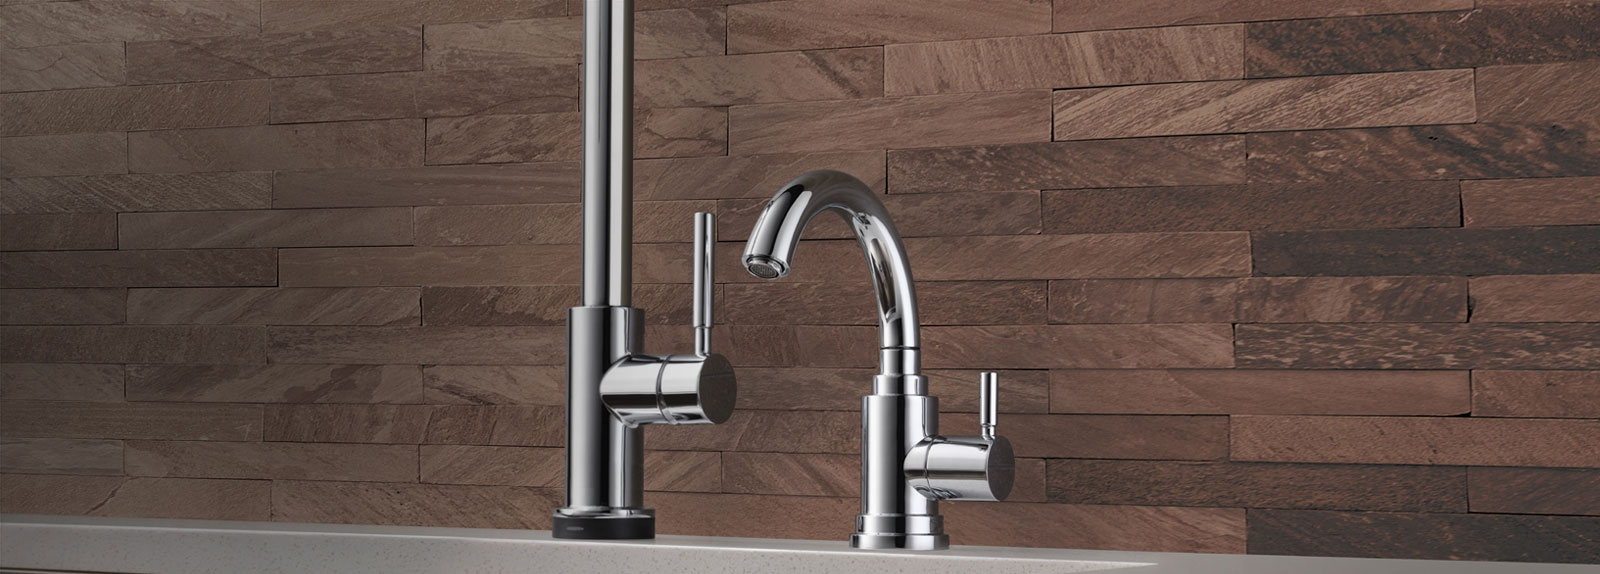 Ideas, beverage faucets kitchen brizo throughout sizing 1600 x 574  .